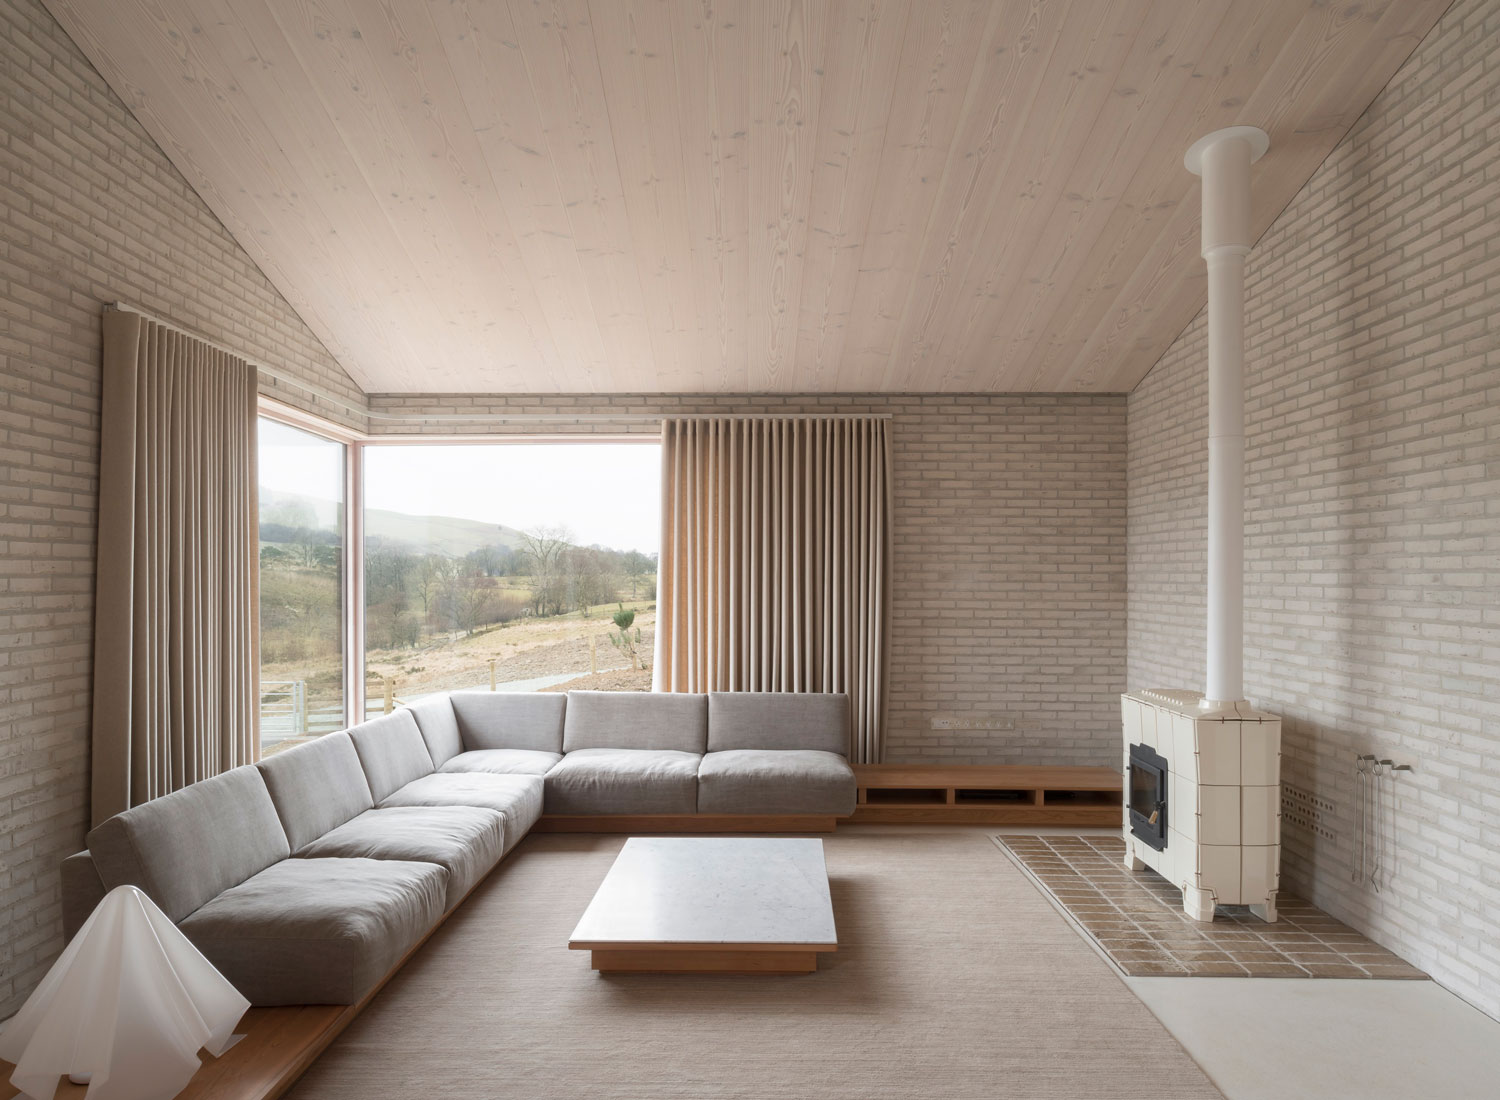 Life House (Tŷ Bywyd): John Pawson's Modern-Day Retreat in Rural Wales   Yellowtrace